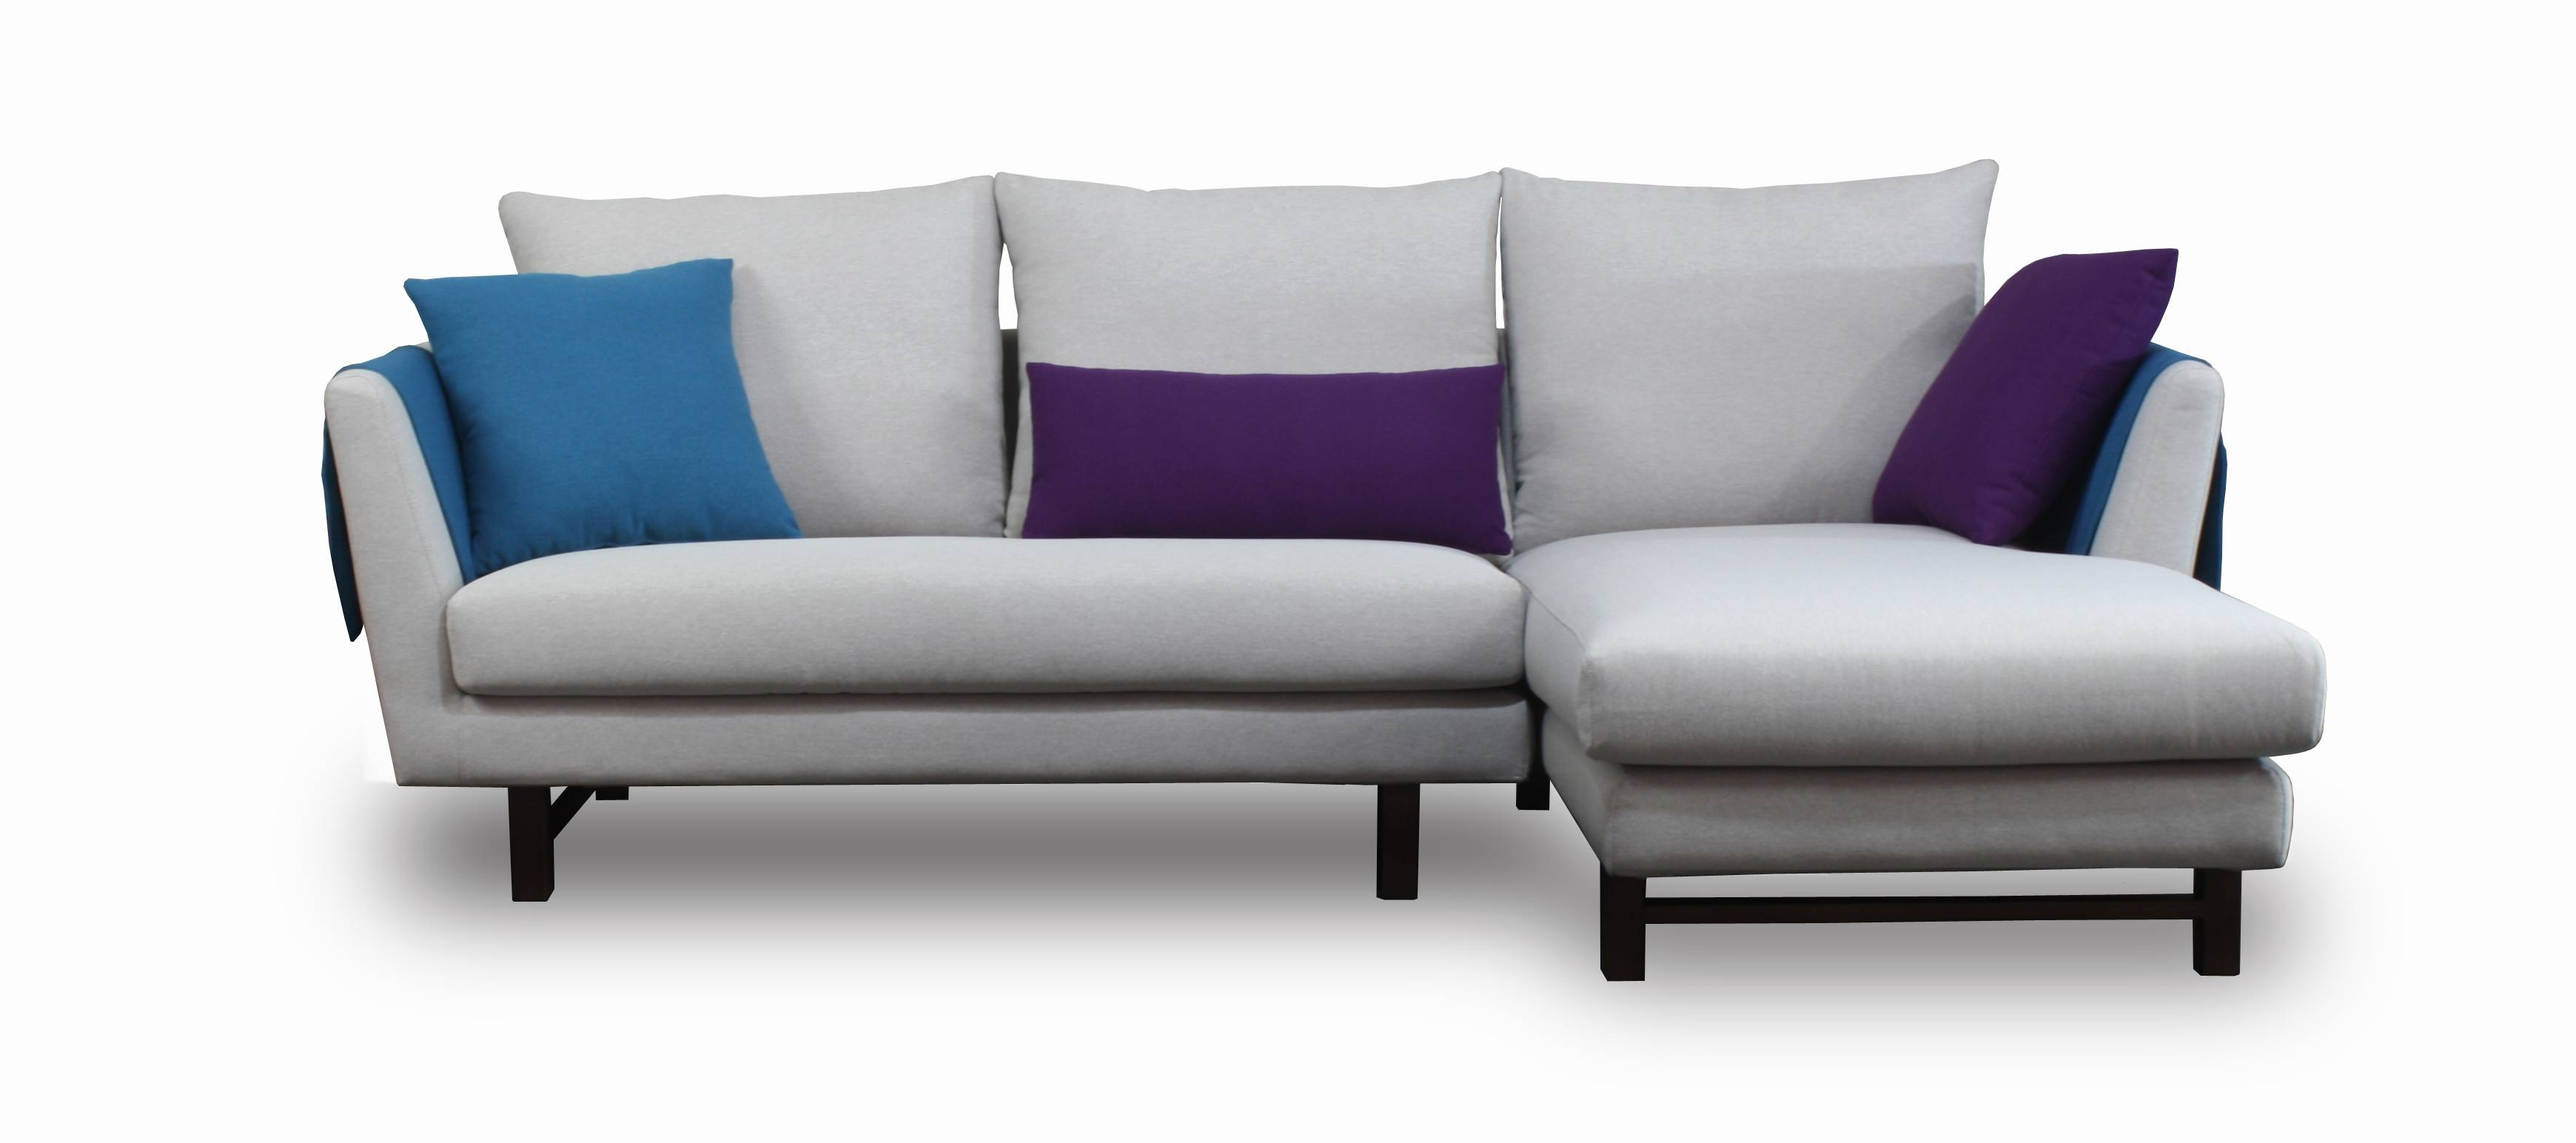 Trend Scandinavian Sofa 64 For Living Room Sofa Inspiration With inside Sofa Trend (Image 24 of 25)